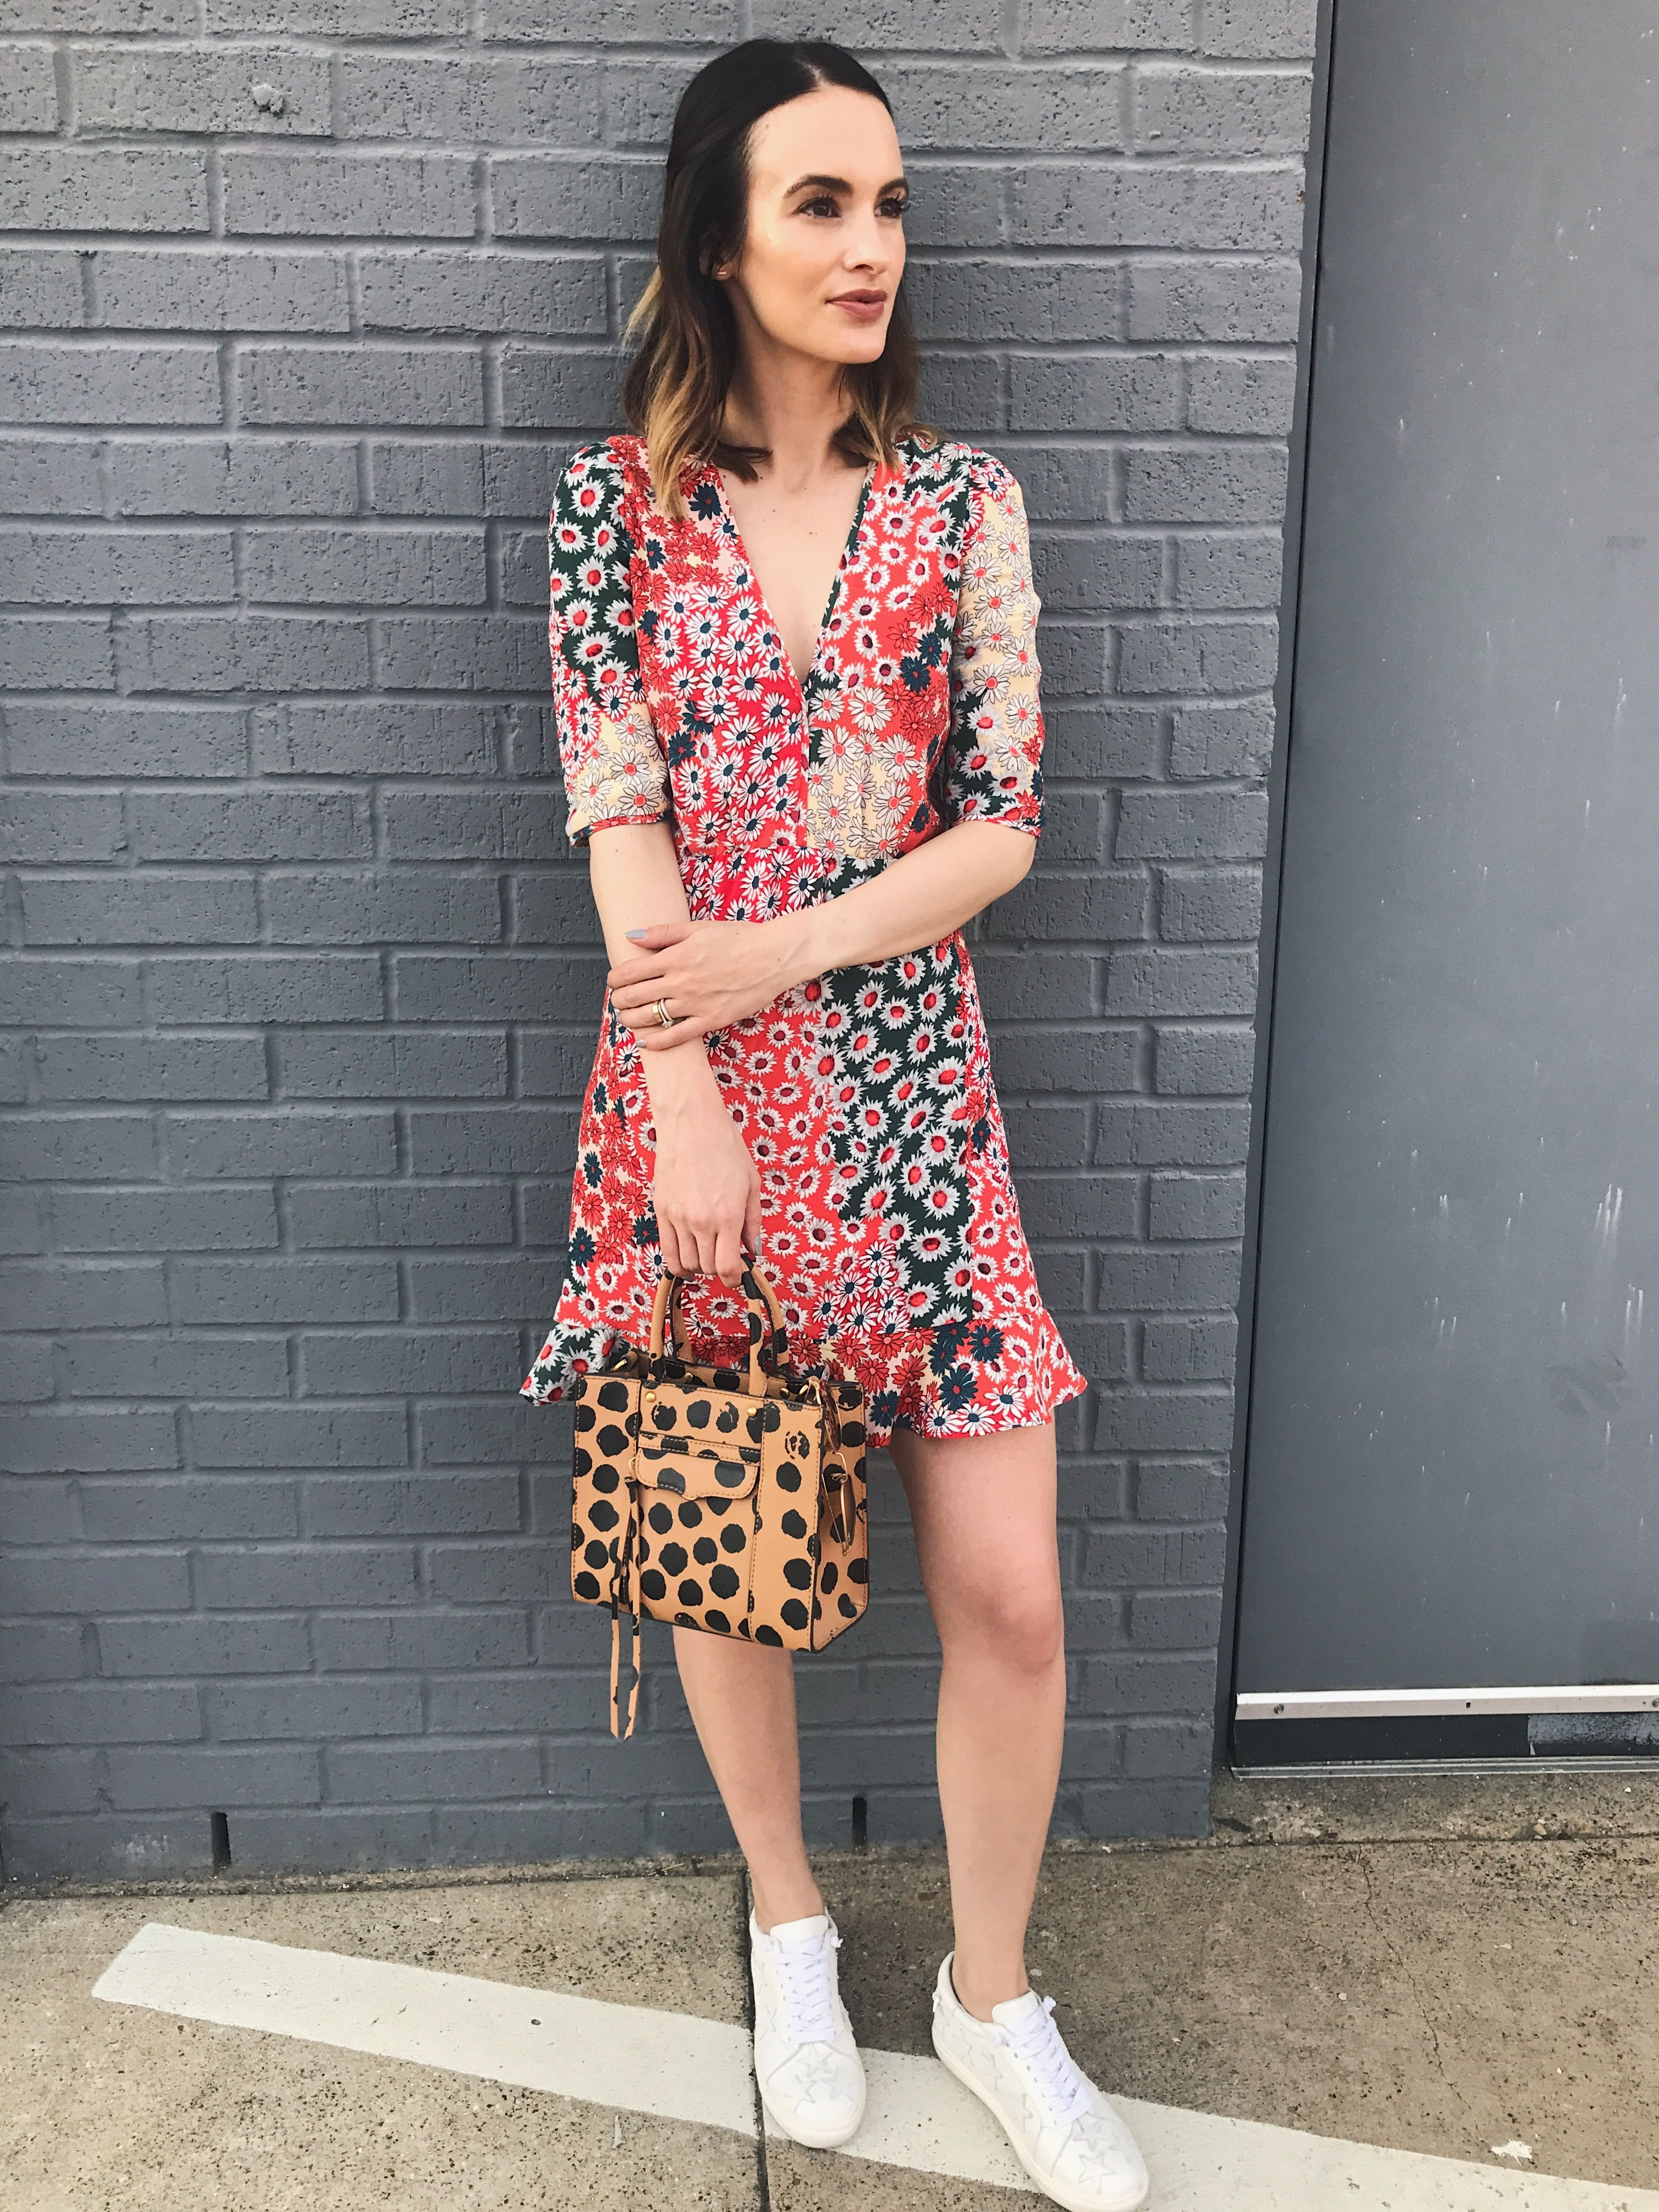 flirty in florals for spring